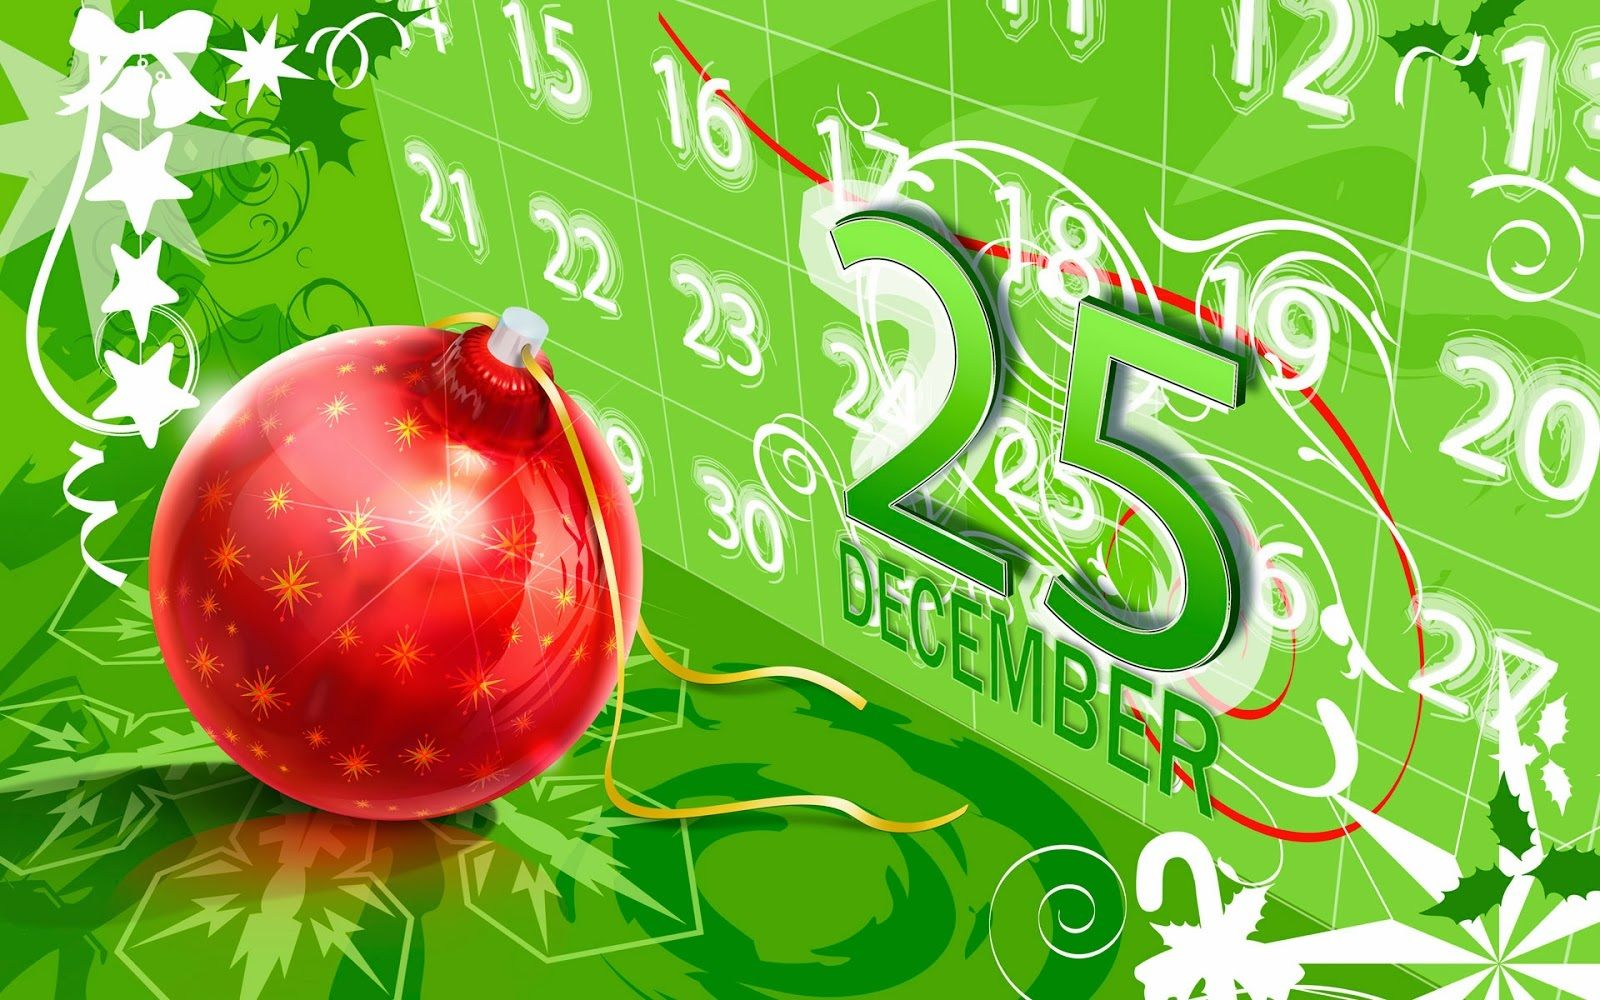 Christmas Day 2014 Cover Photos for Facebook, Google+, Twitter ...